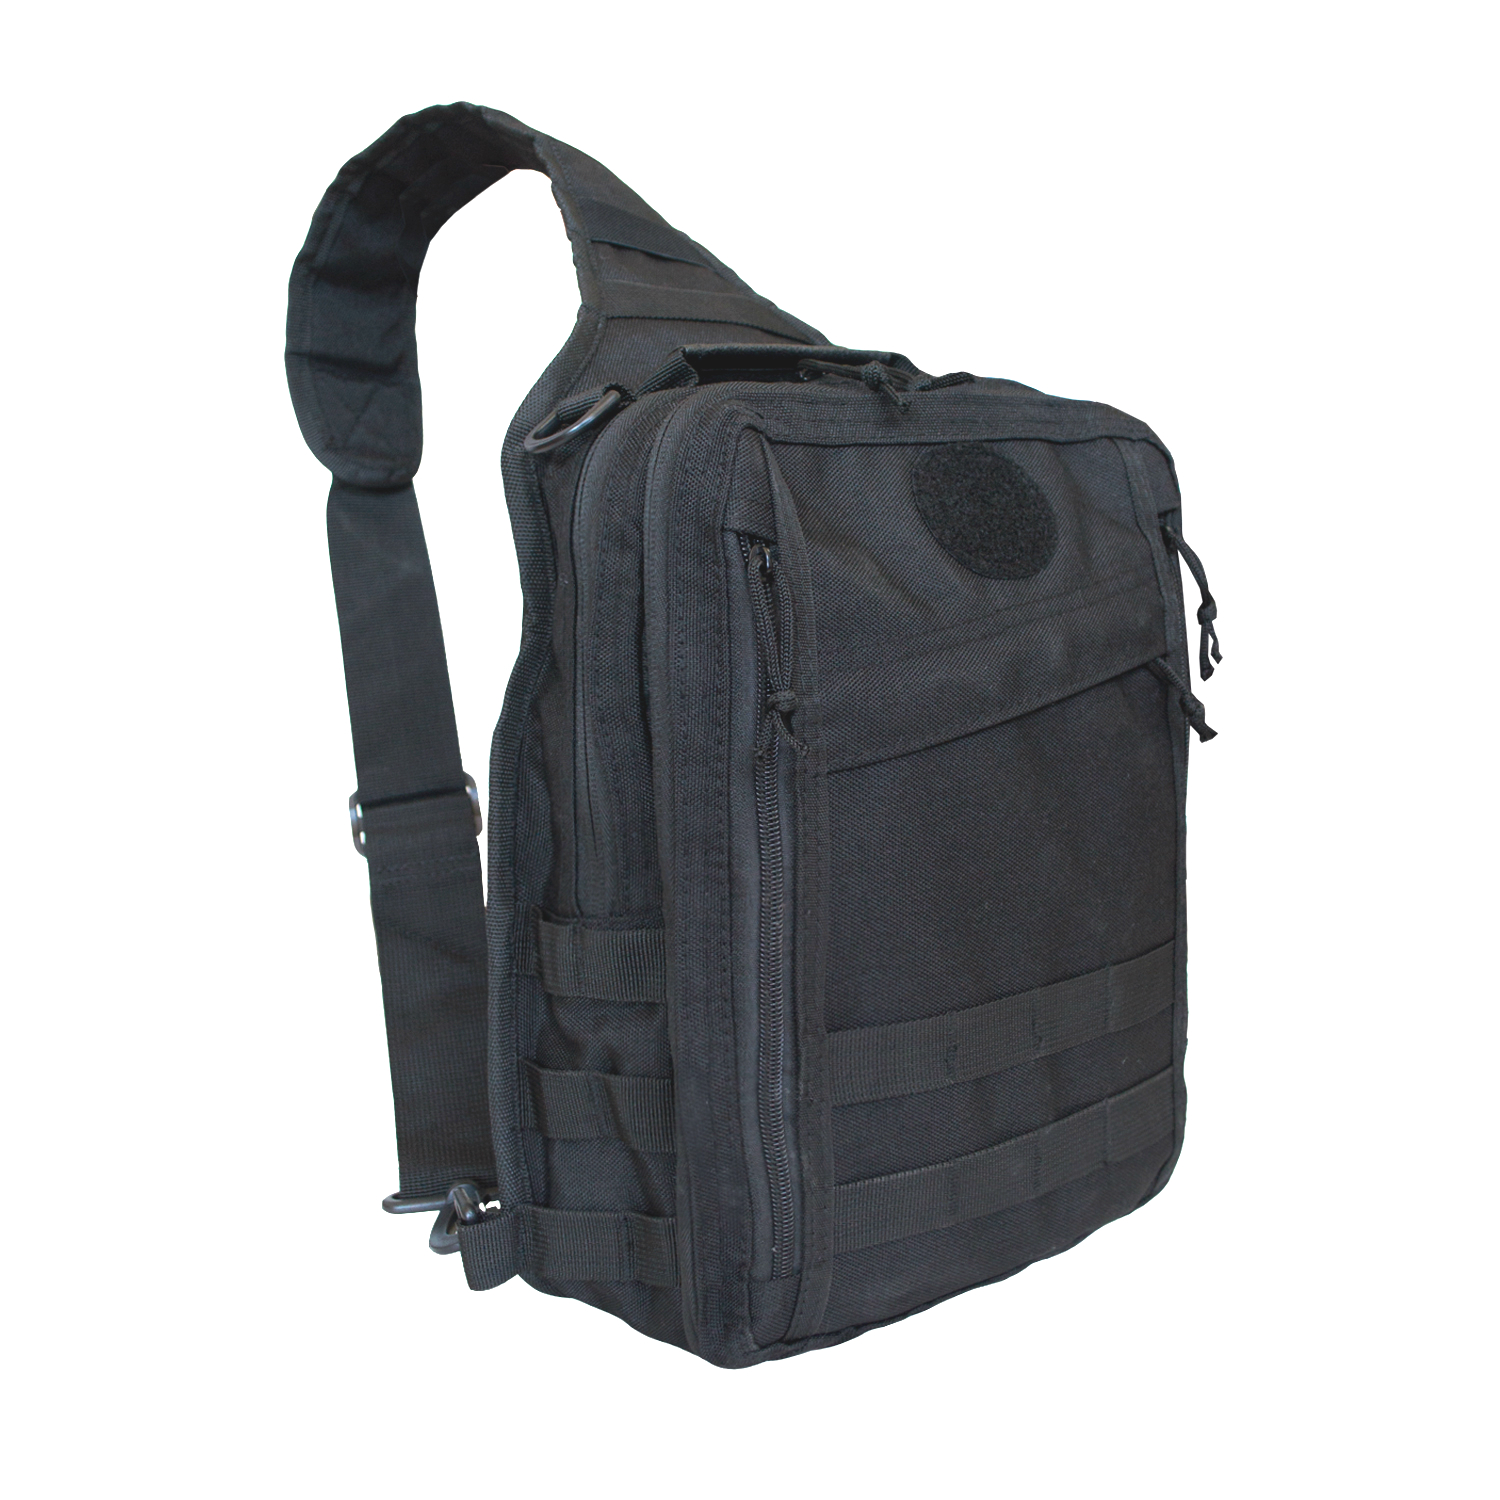 Outdoor Tactical Shoulder Backpack Military Utility Sport Bag Pack Daypack for Camping Hiking Trekking Rover Sling Chest Bag 600d outdoor sports bag shoulder military camping hiking bag tactical backpack utility camping travel hiking trekking bags